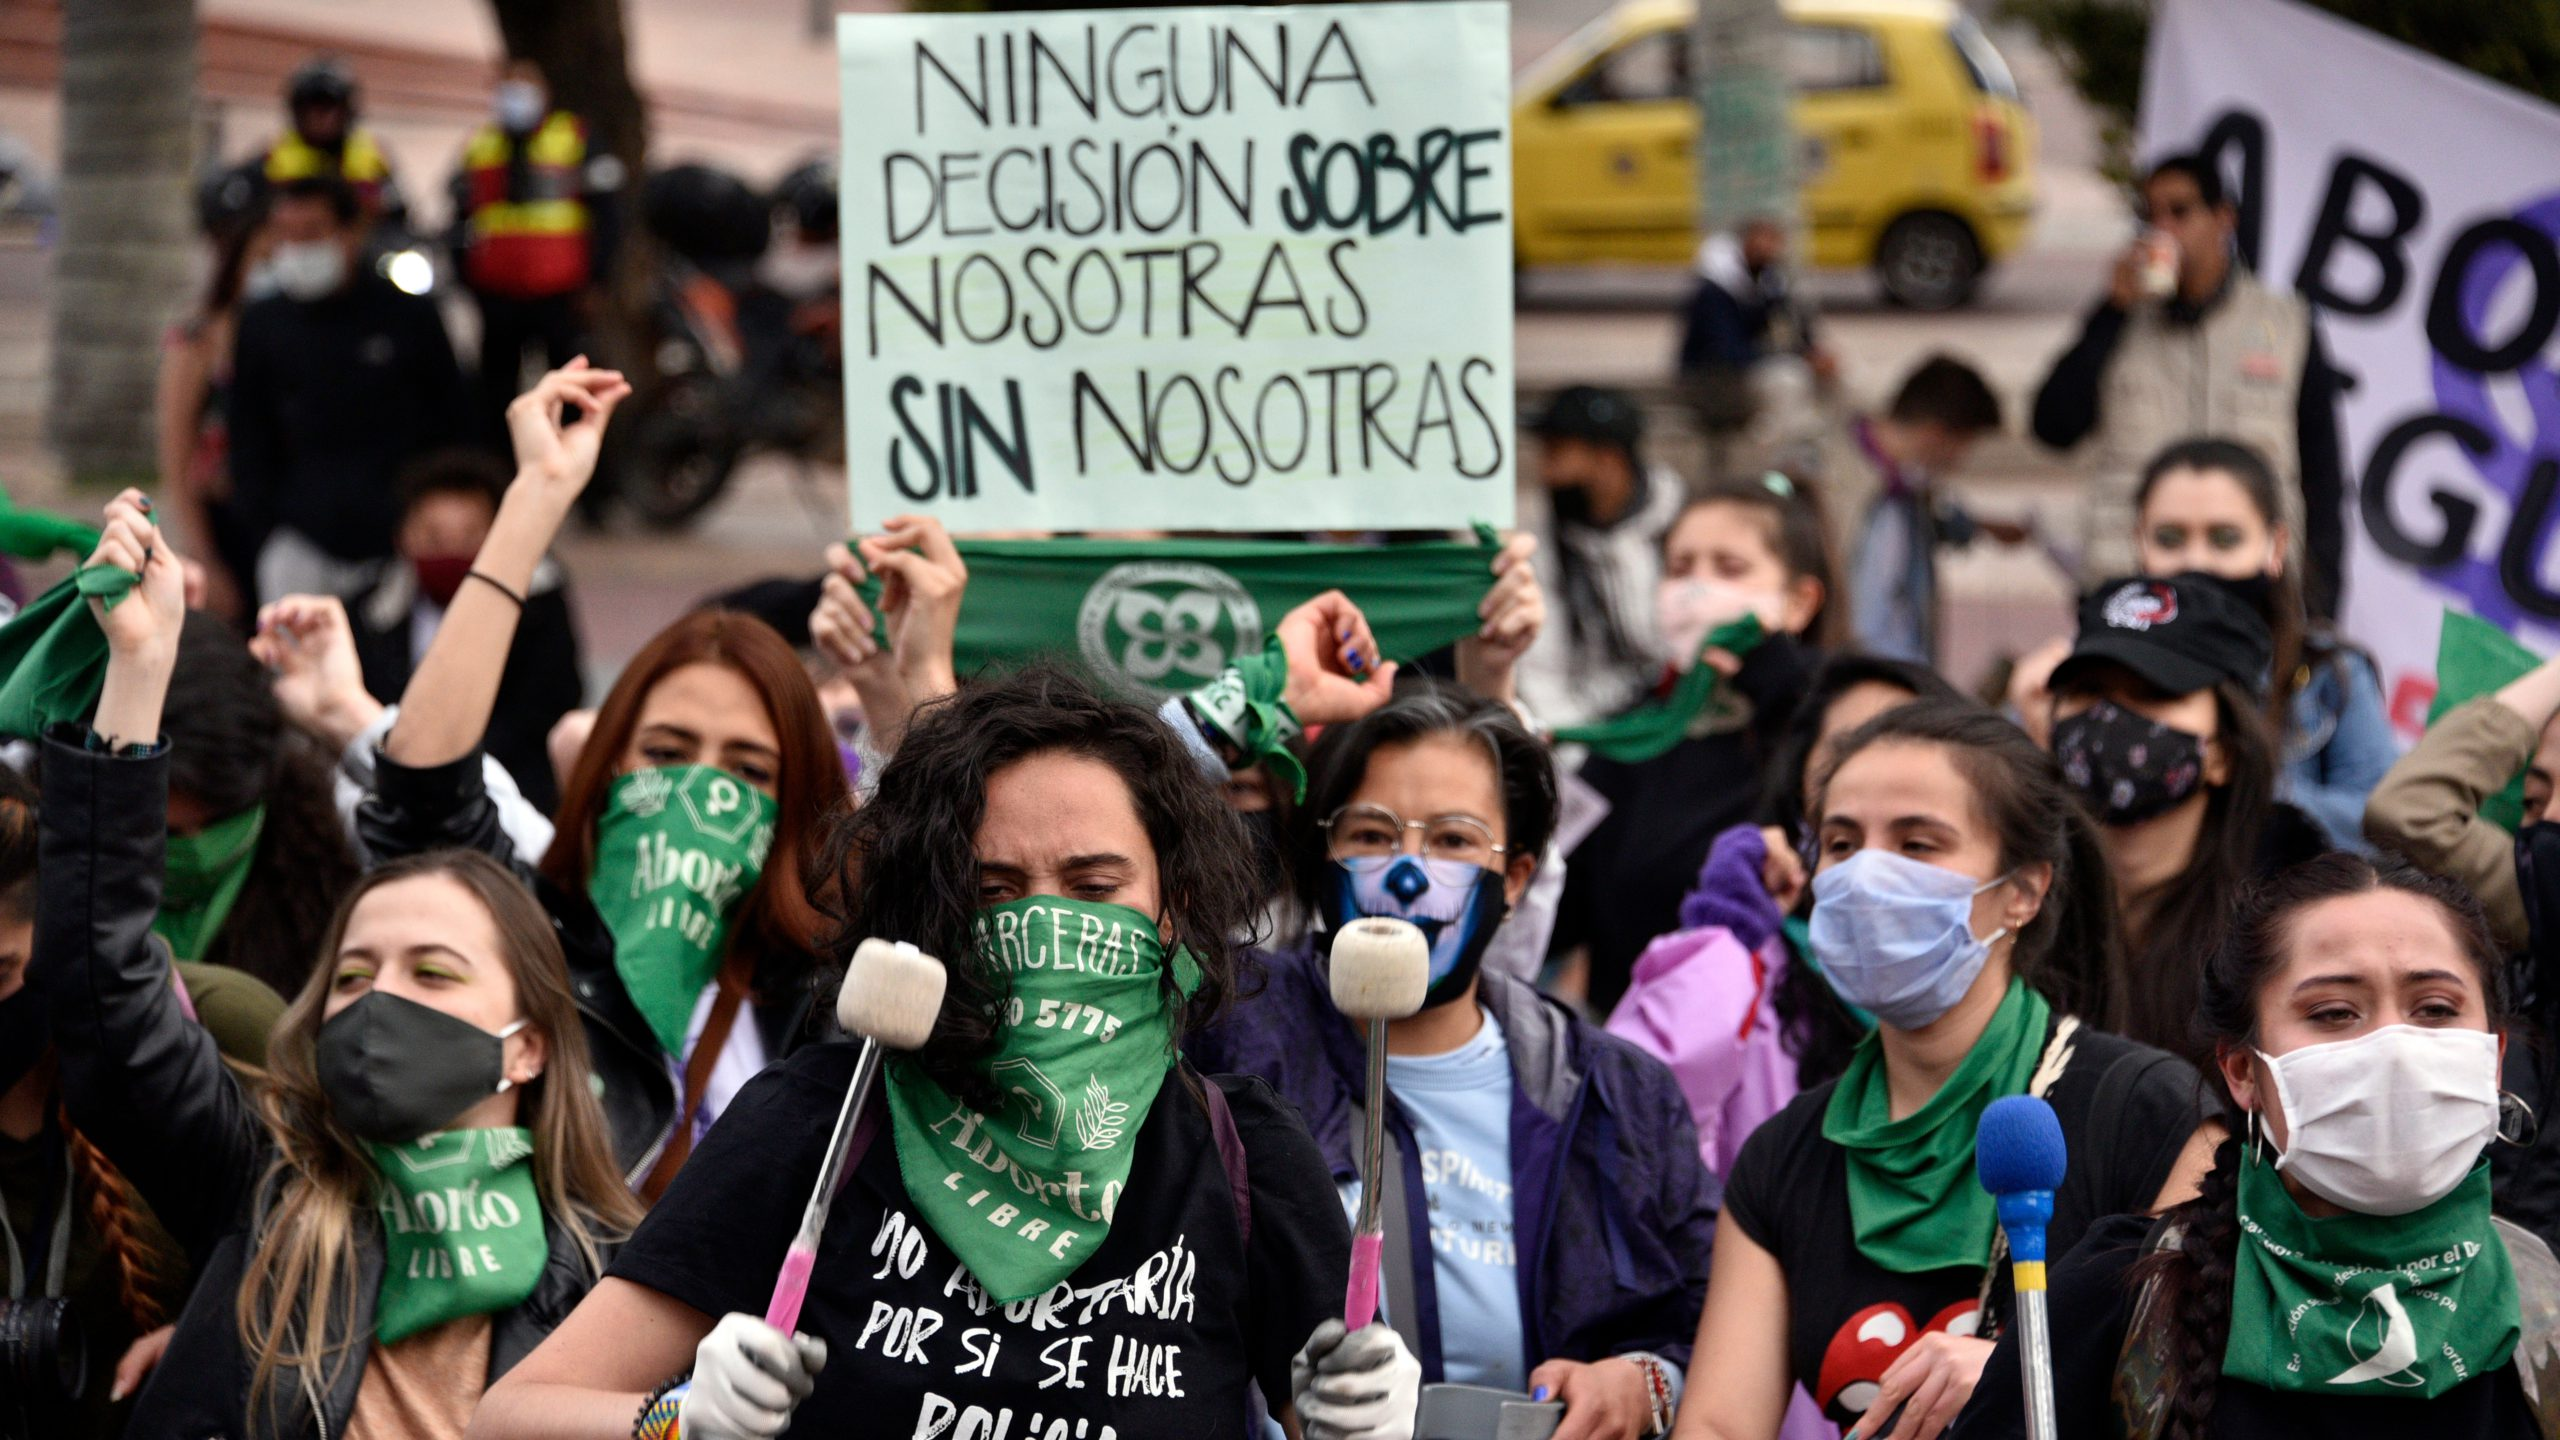 Colombia prosecutes more women each year for aborting